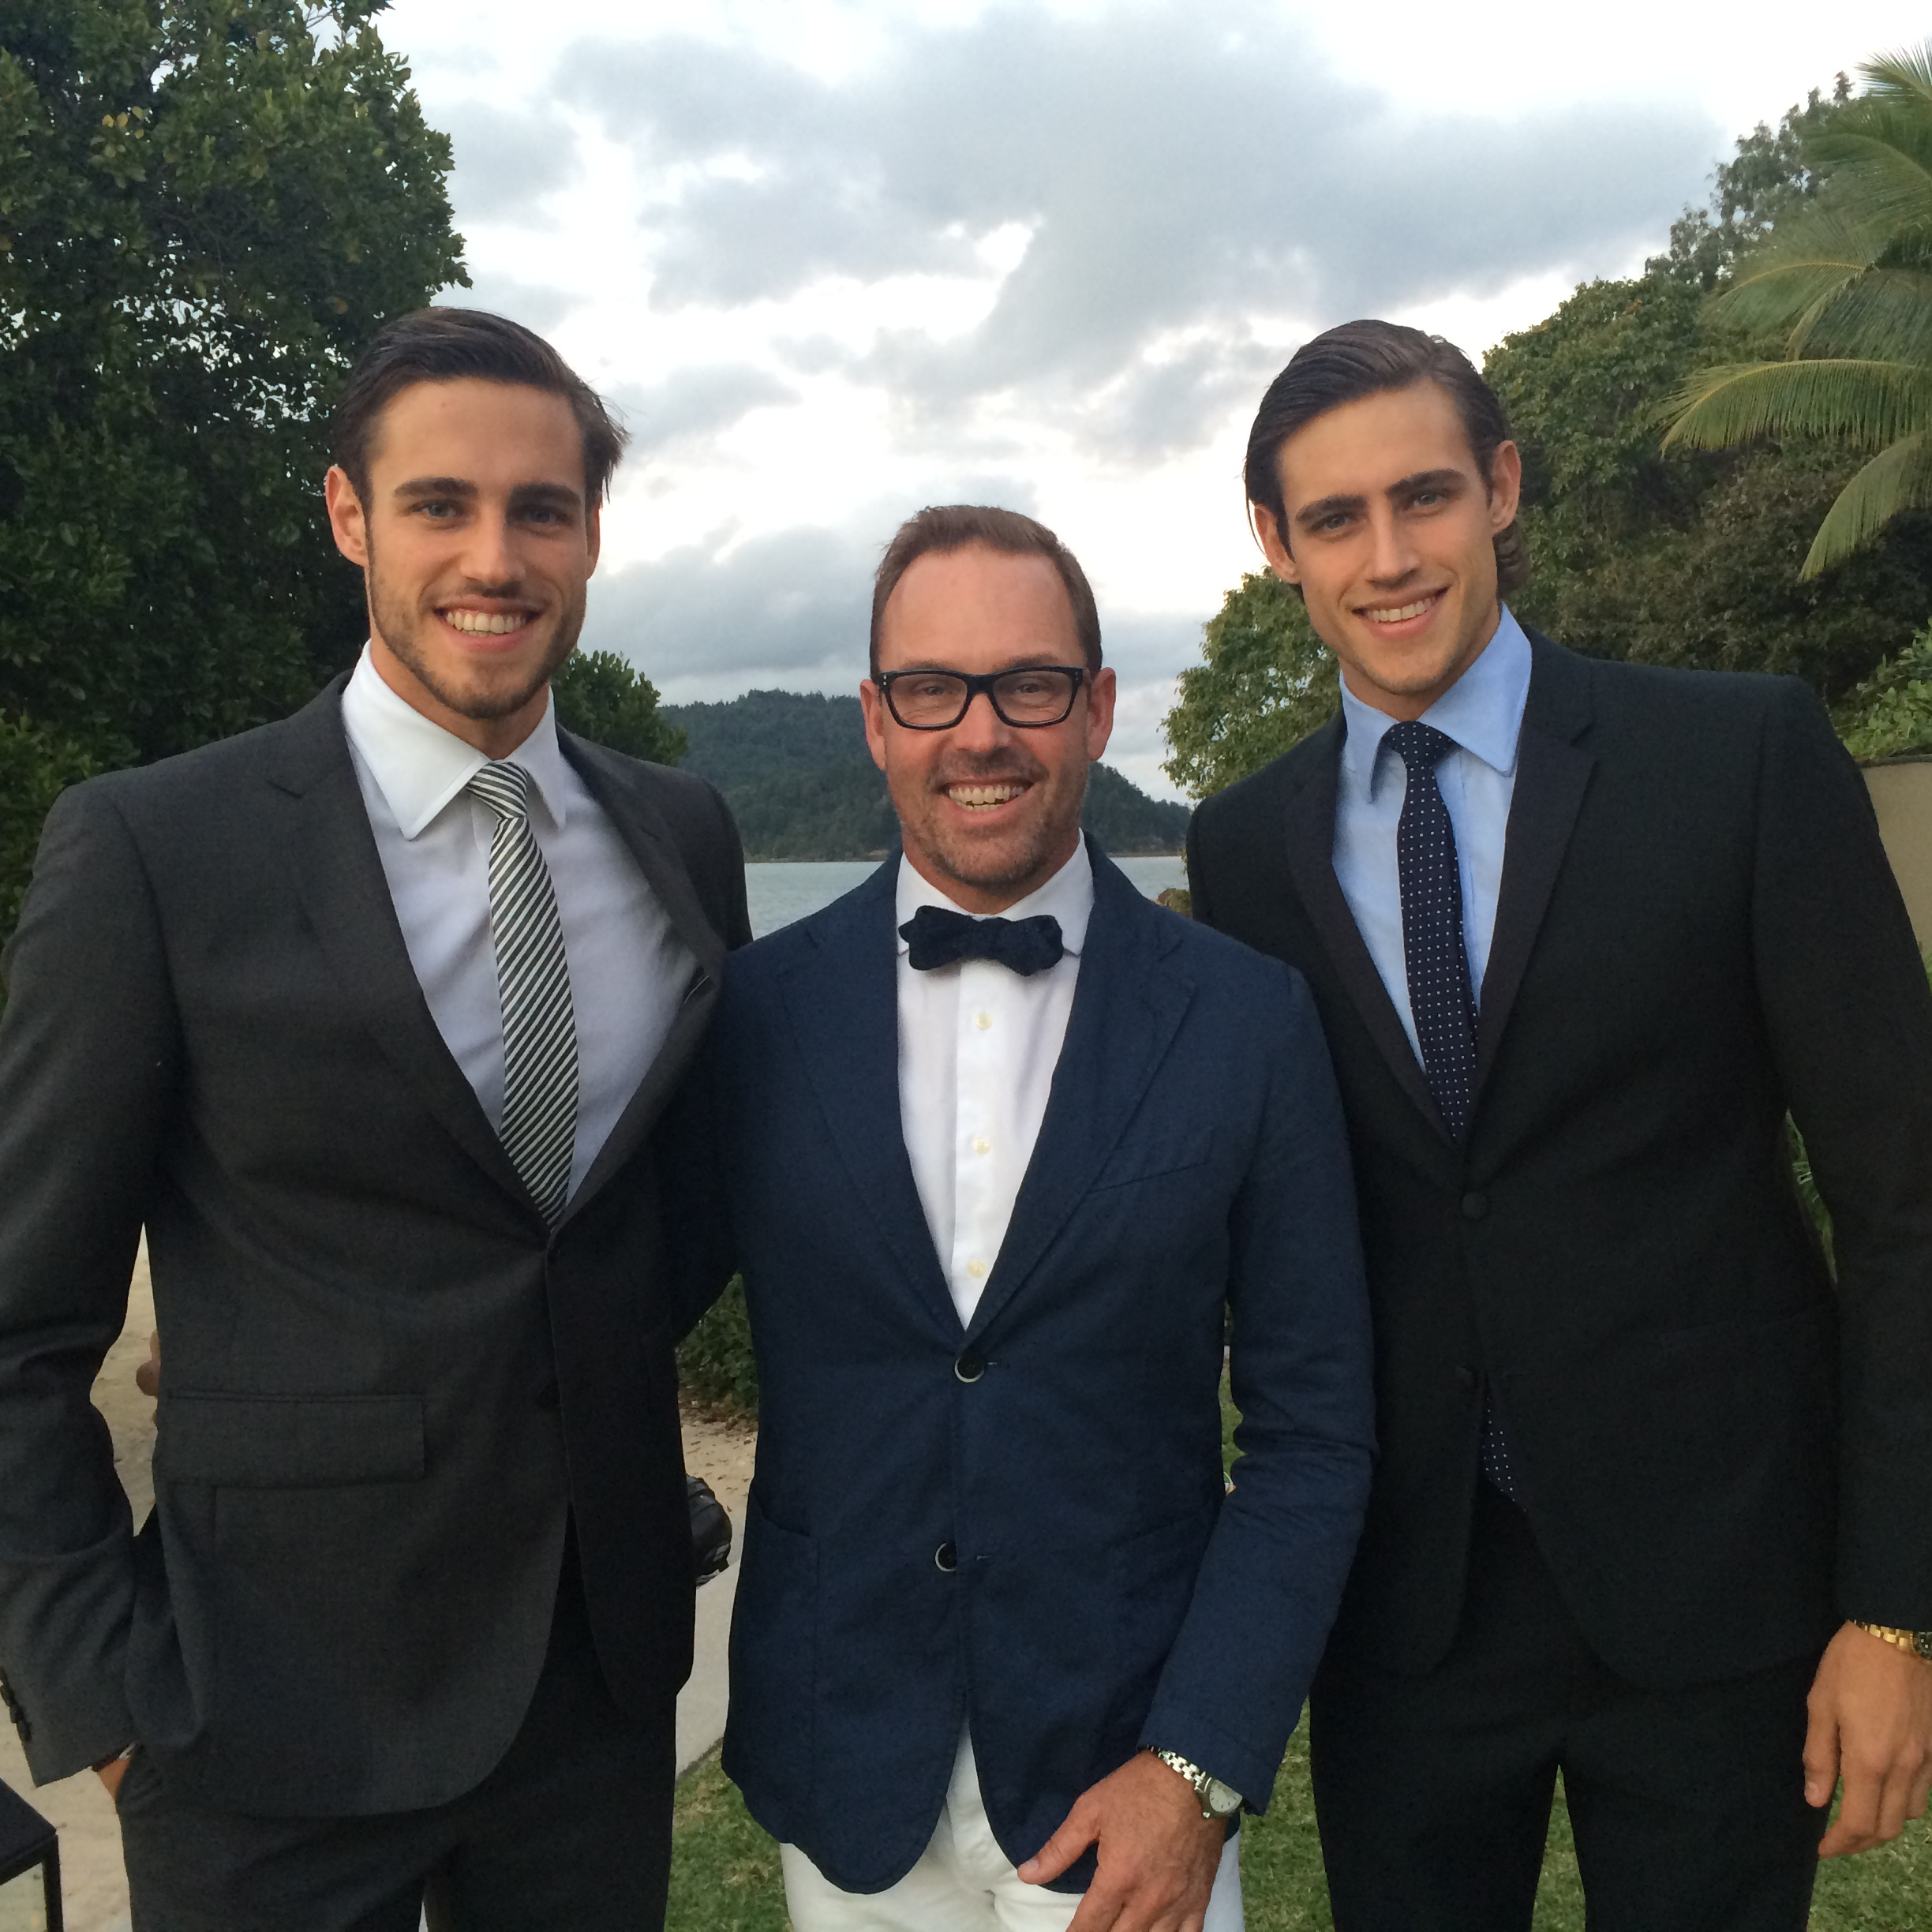 Brent with the handsome Stenmark twins